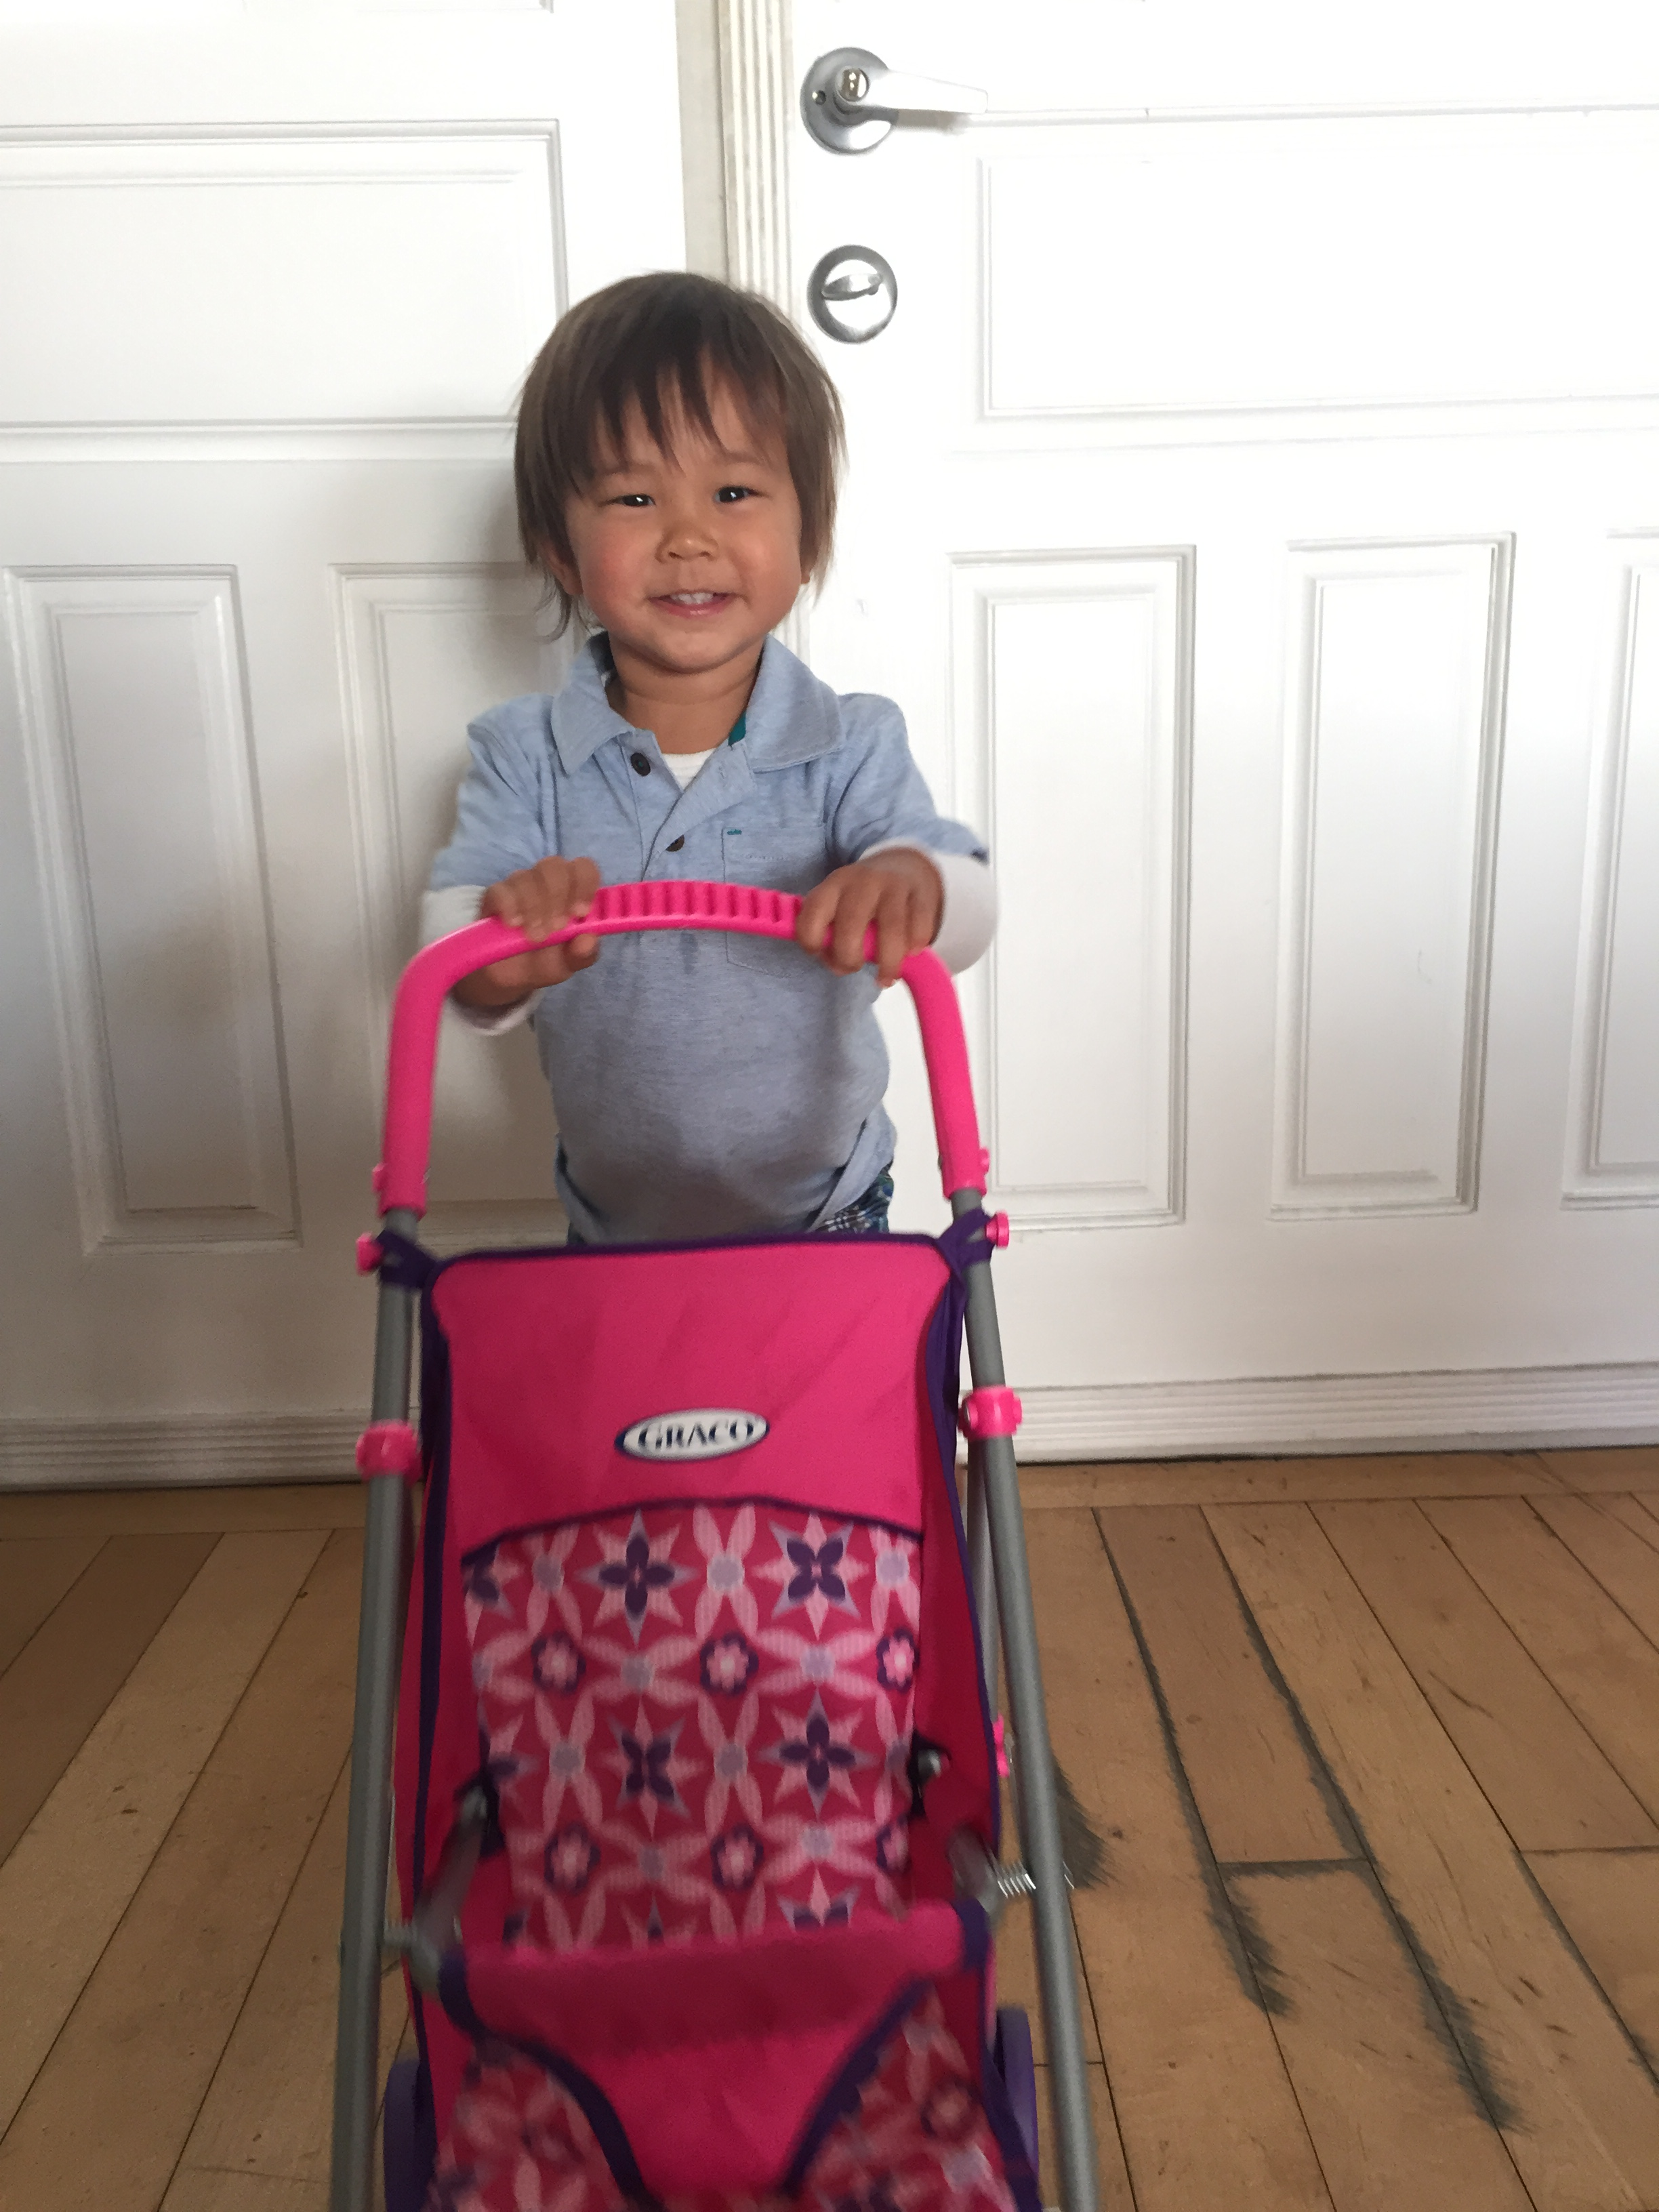 Boys like pink and push strollers around too